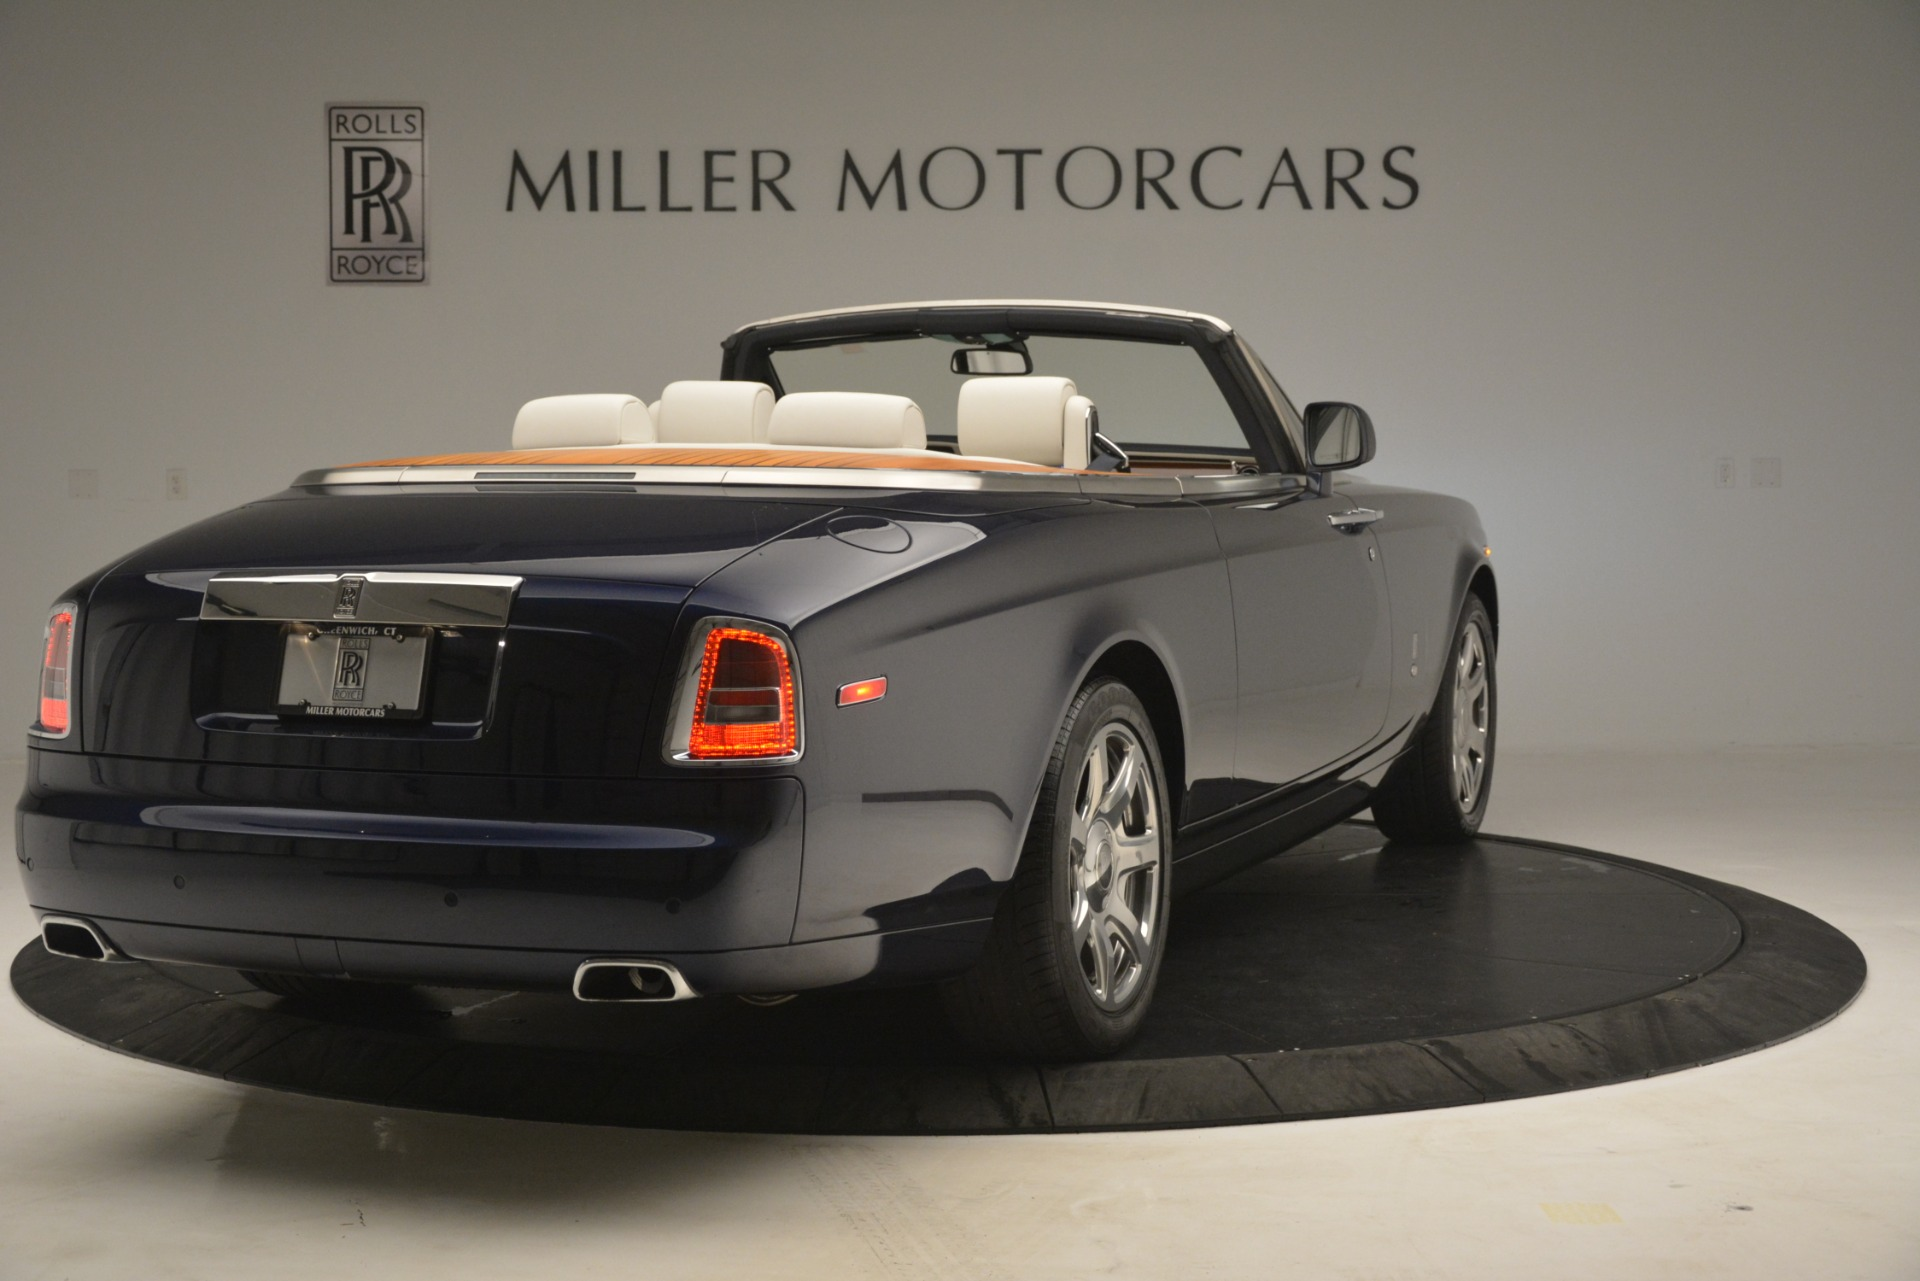 Used 2013 Rolls-Royce Phantom Drophead Coupe  For Sale In Westport, CT 2999_p11